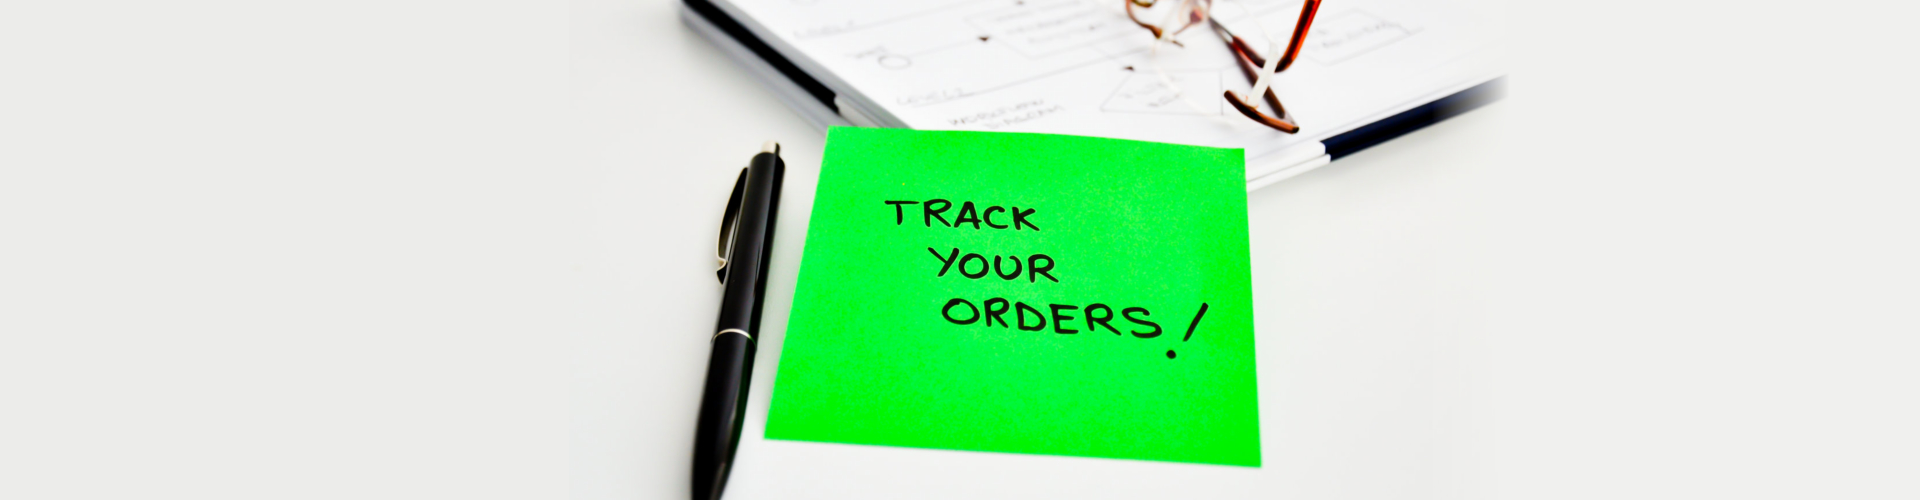 Tracking orders